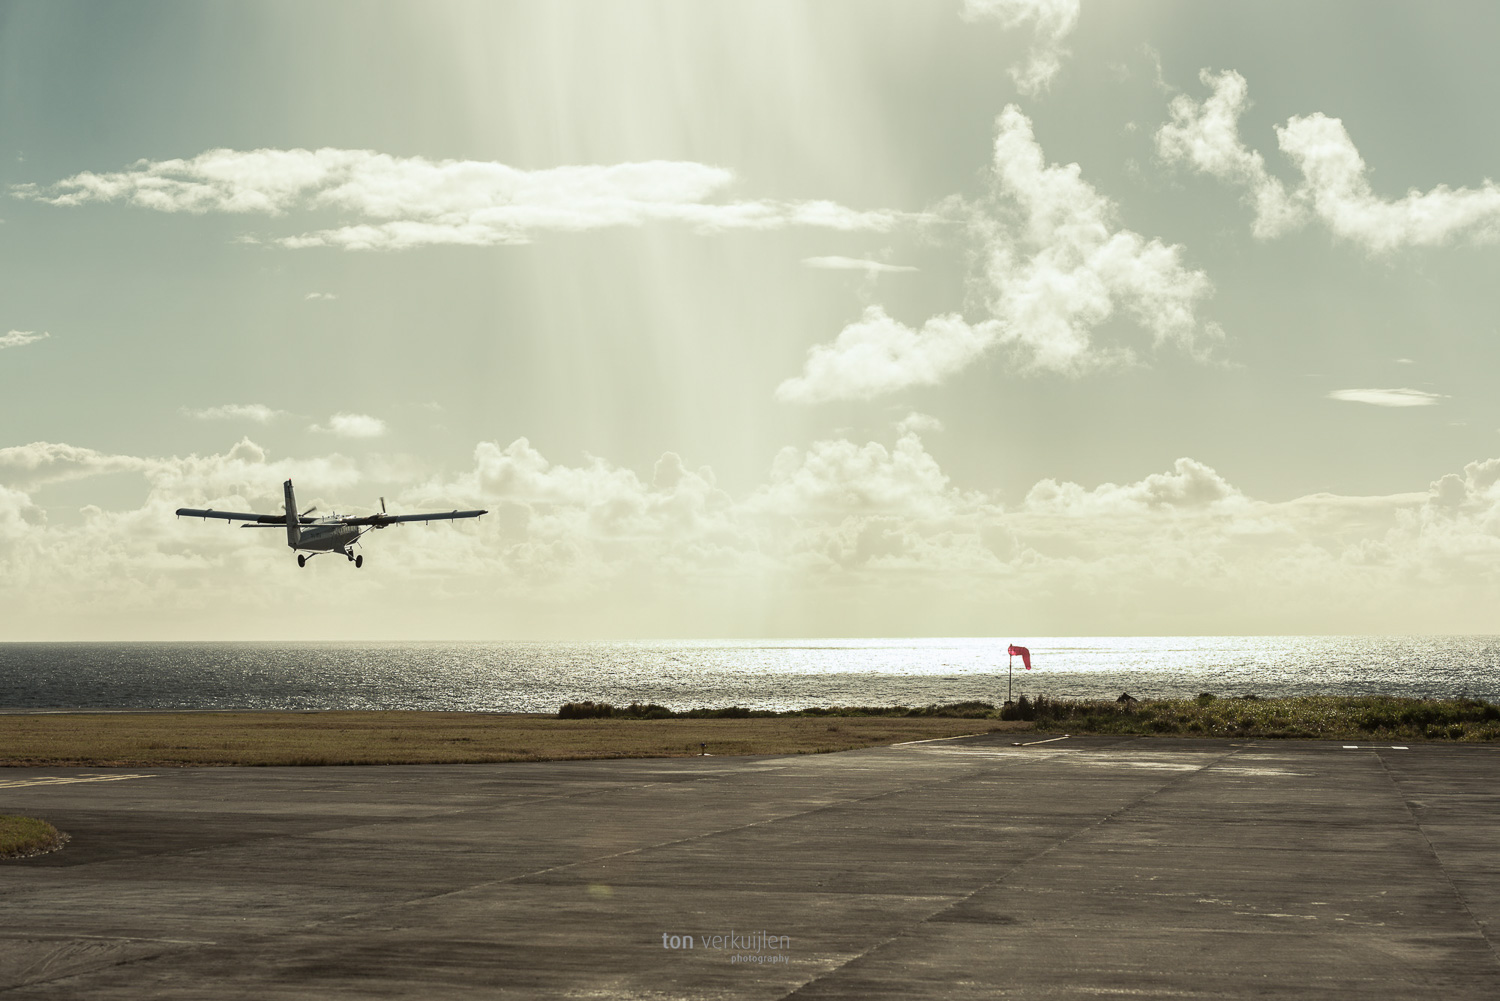 saba airport ton photography